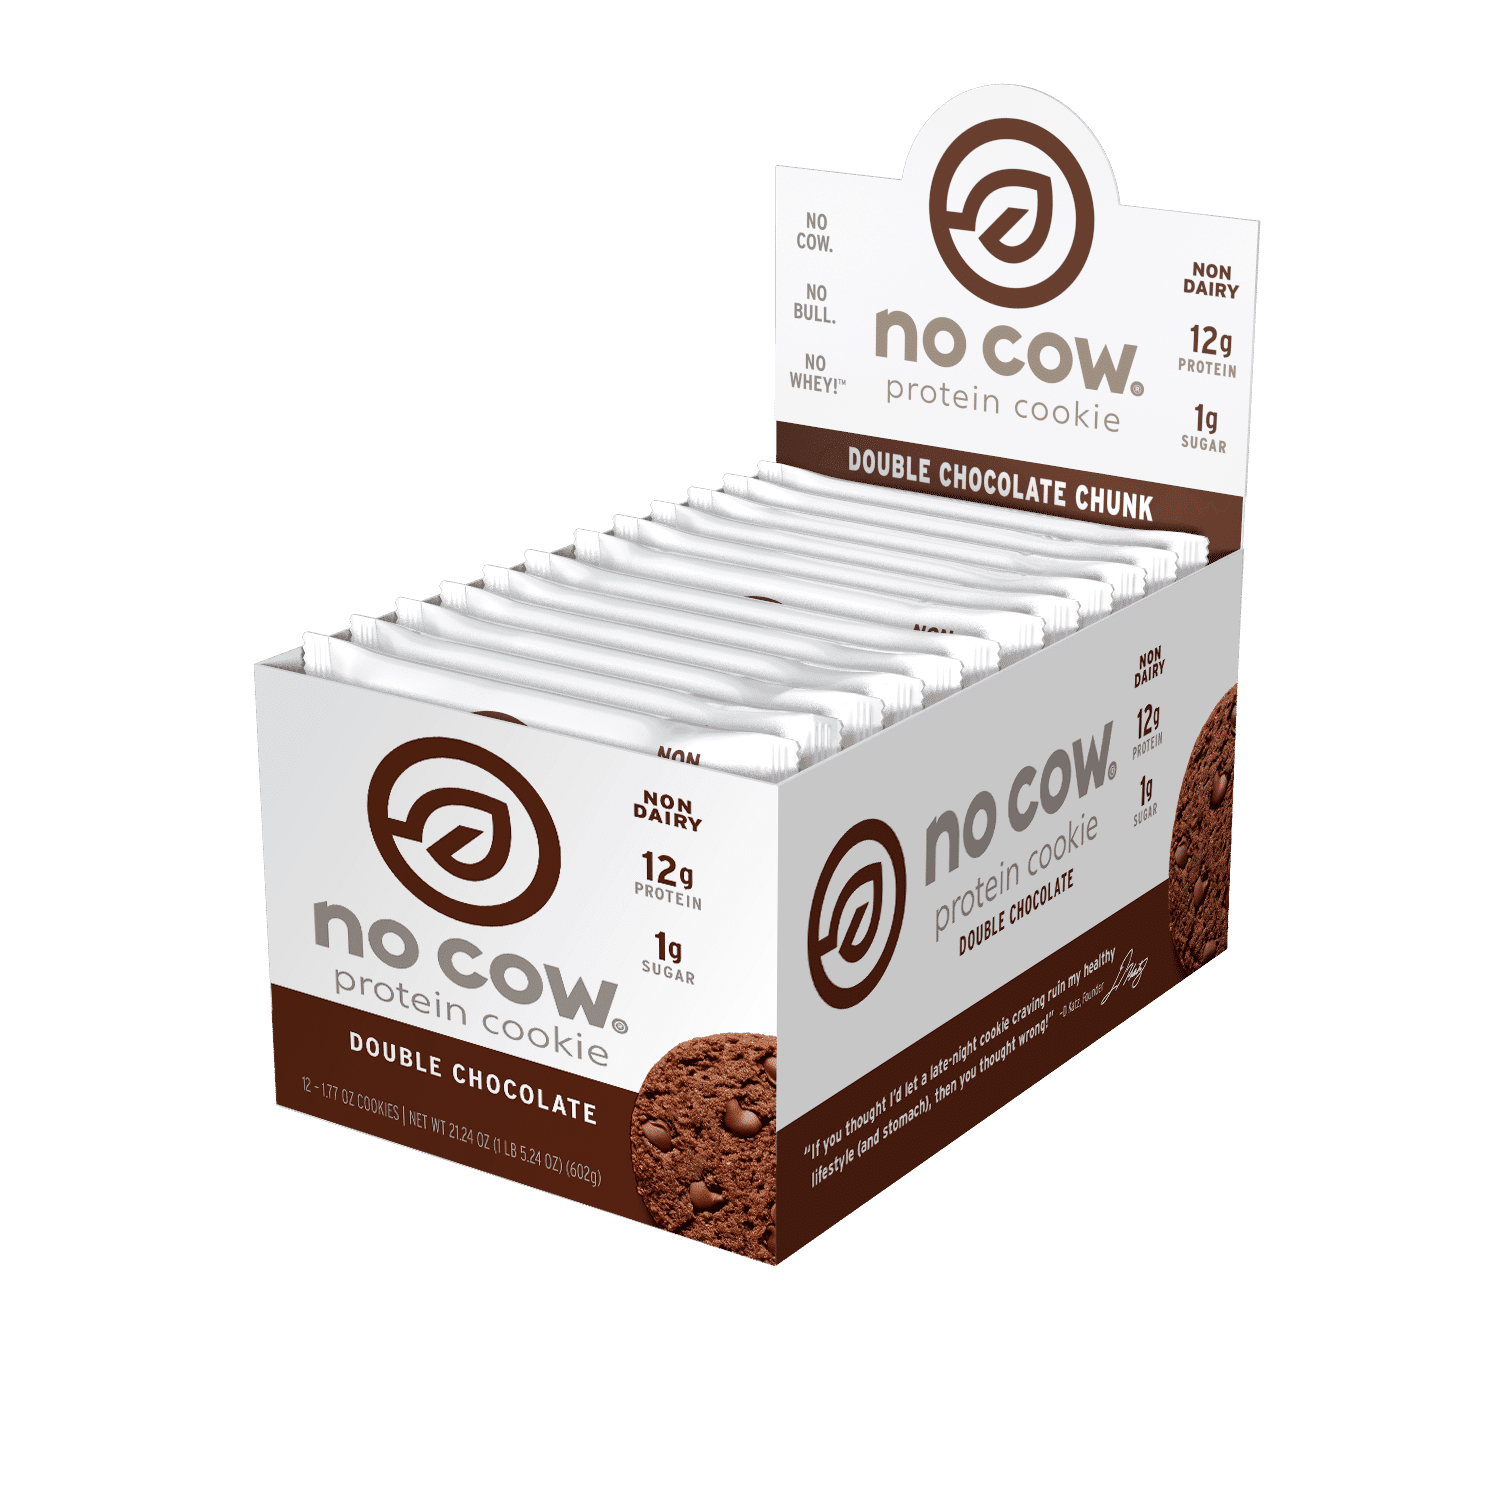 Best Low Carb Protein Bars for Keto - D's Natural No Cow